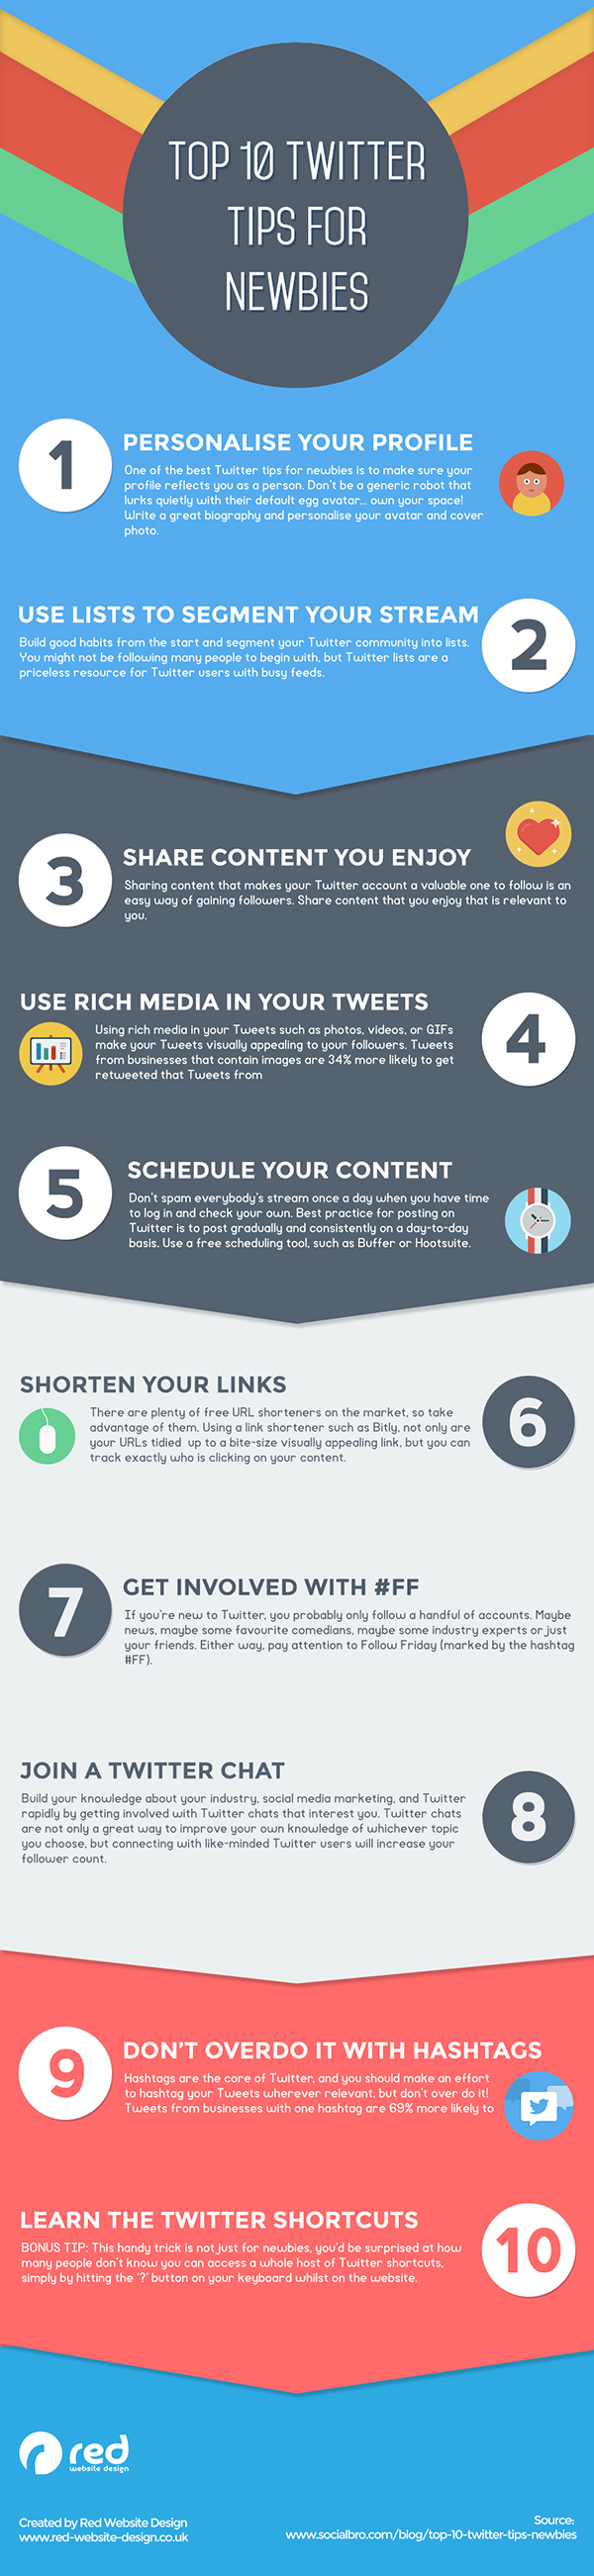 top-10-twitter-tips-for-newbies1